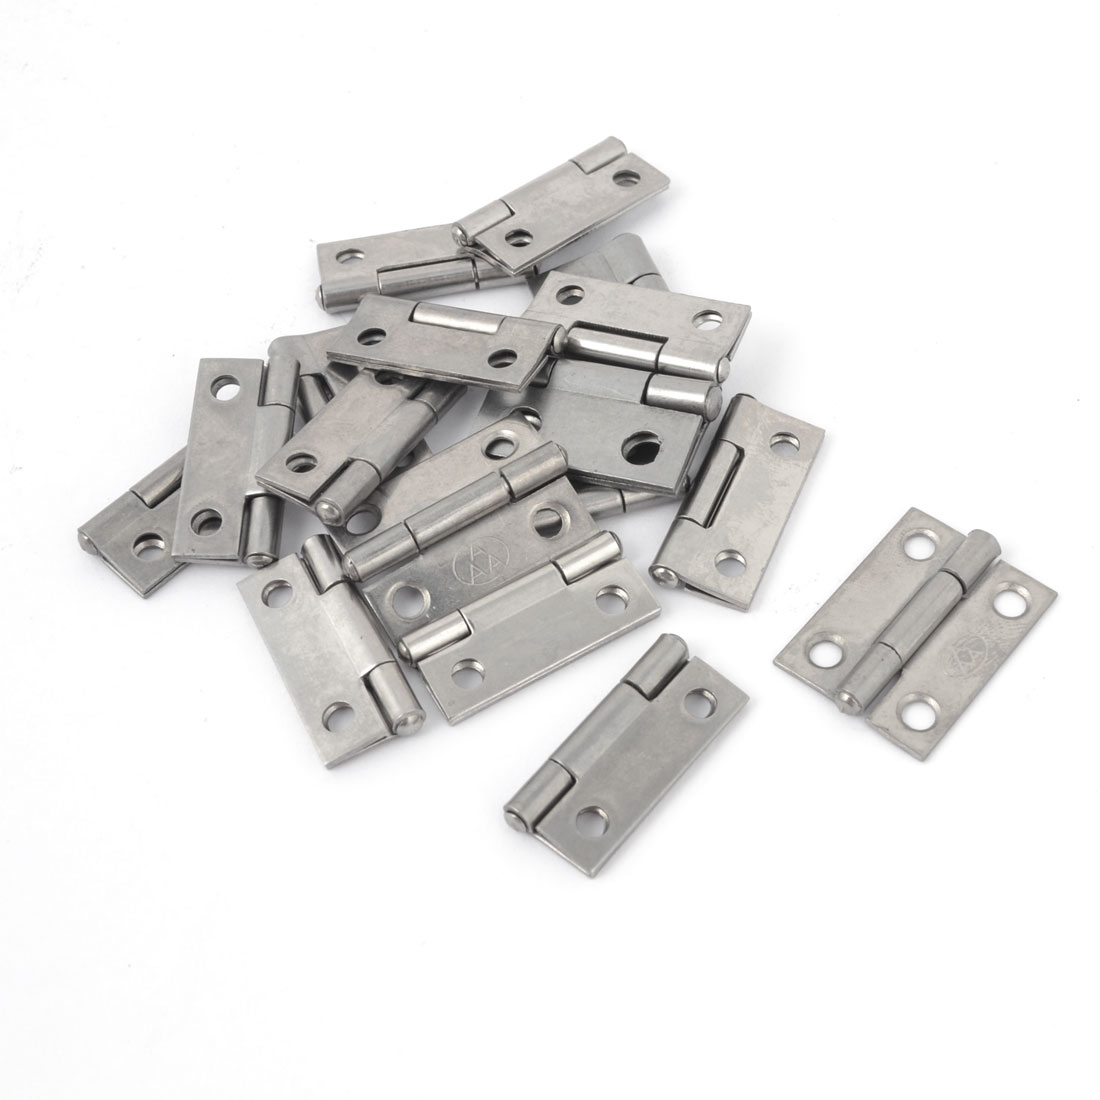 "20 Pcs Home Office Cupboard Cabinet Silver Tone Stainless Steel Foldable Rotating Cabinet Door Hinge 1"" Length"